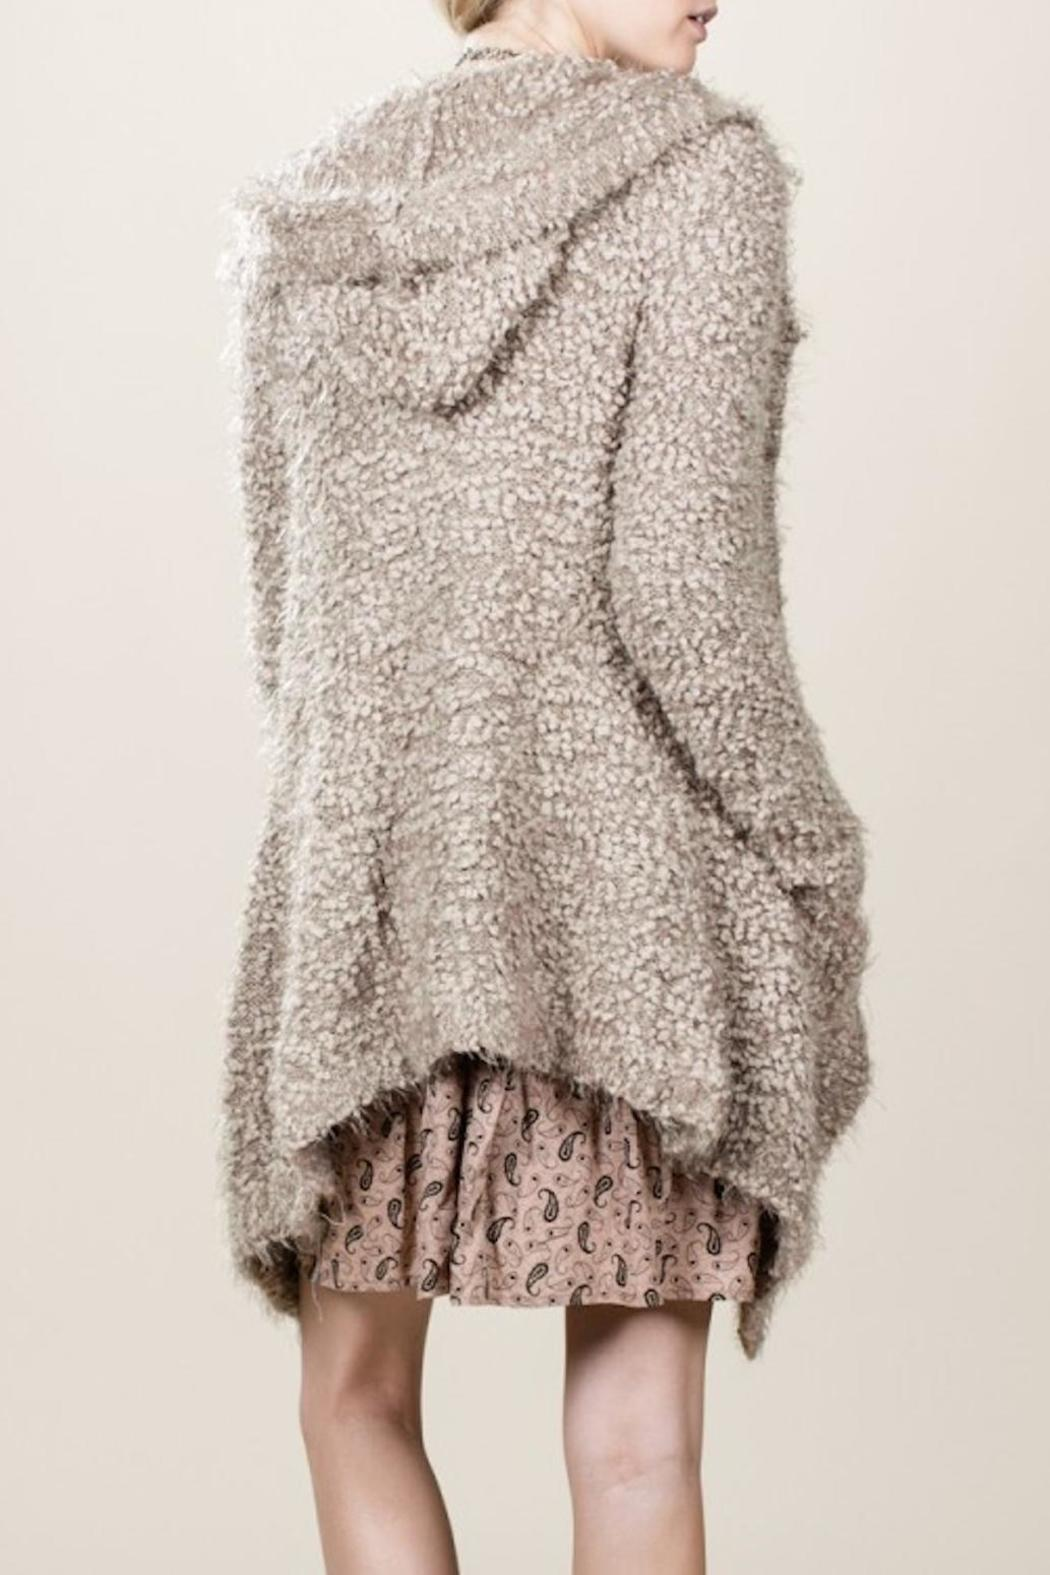 En Creme Fuzzy Hooded Cardigan from New York by Lucia Boutique ...